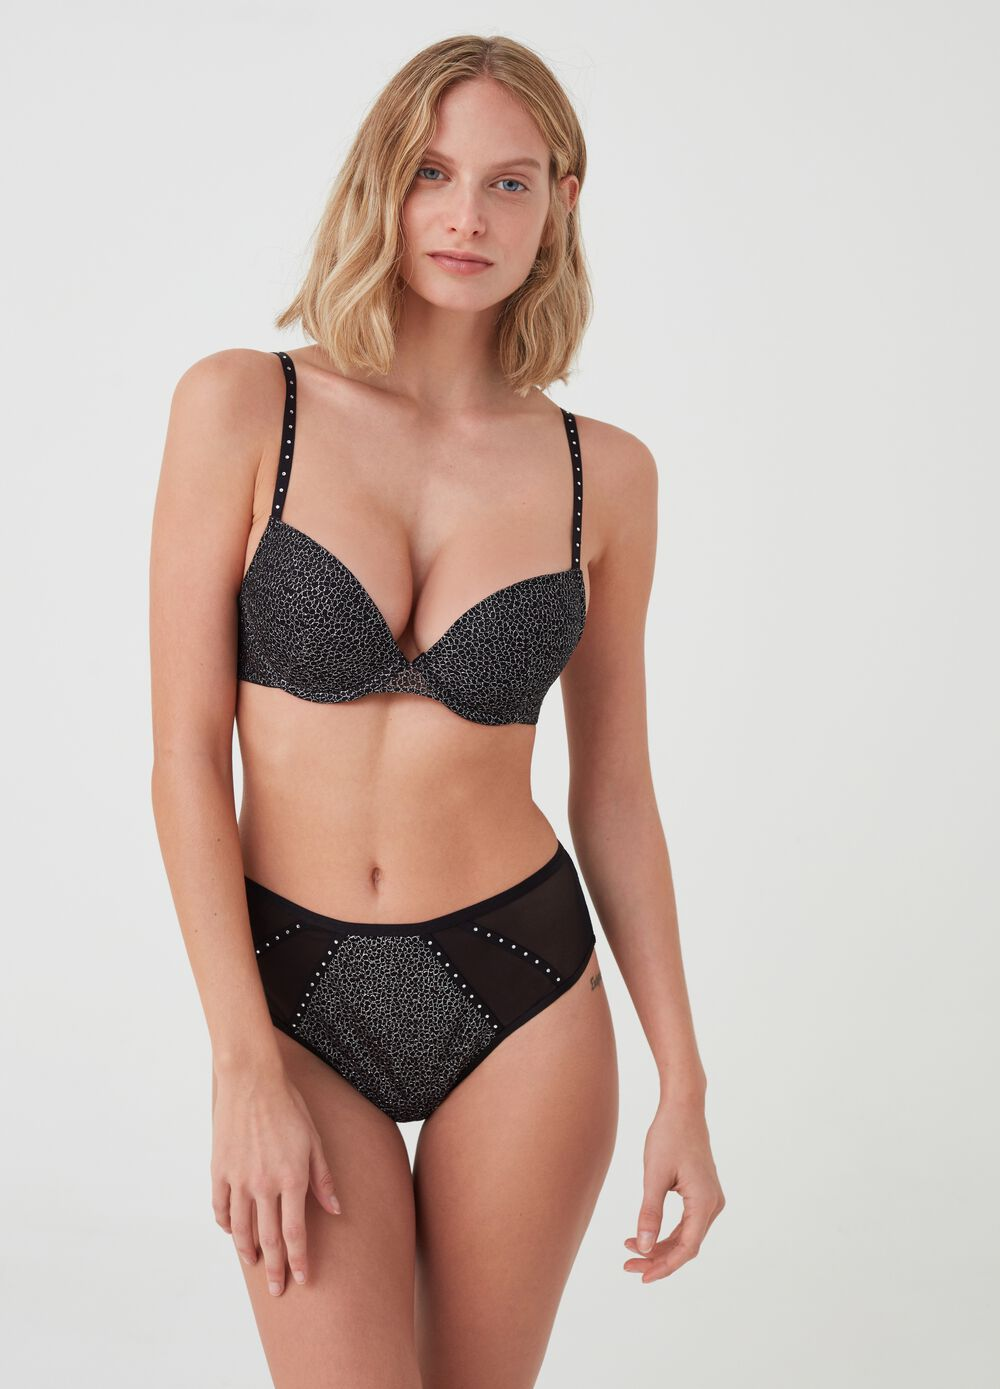 Jennifer Push up - Wow effect with diamantés